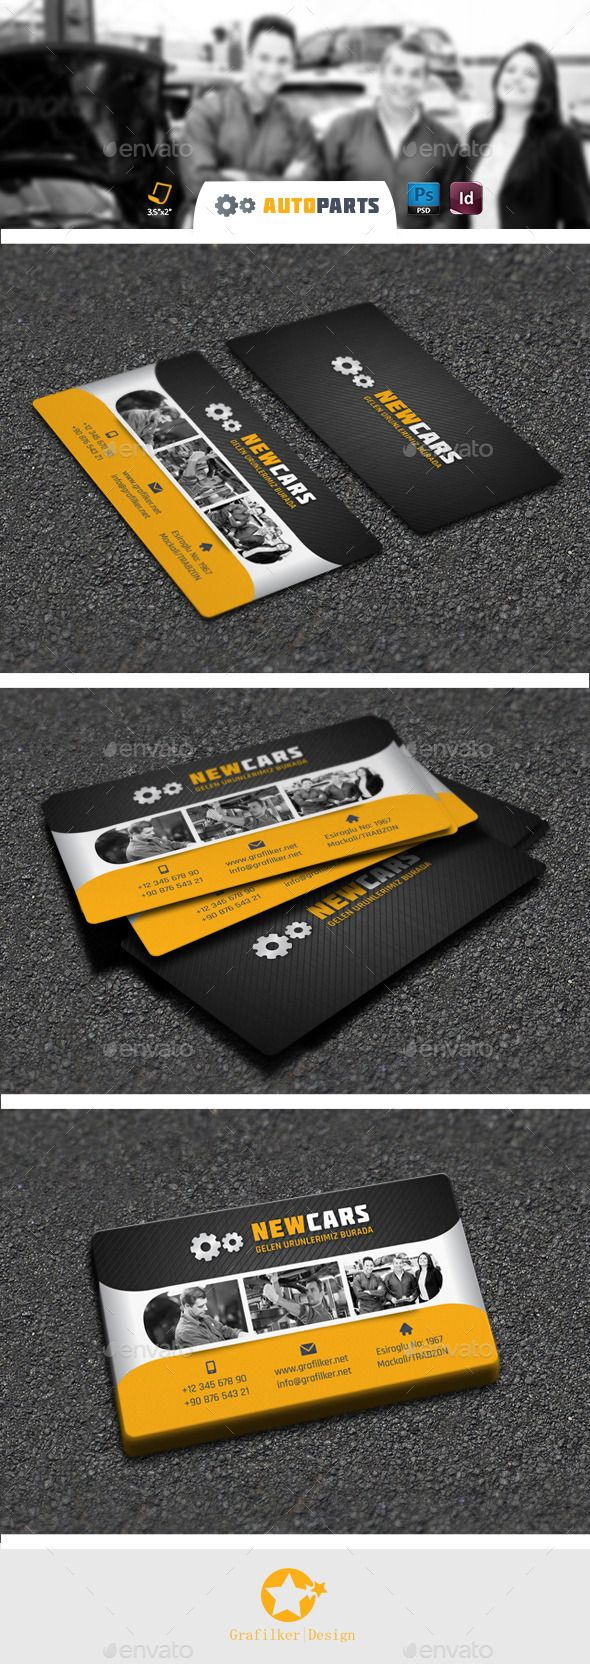 Automobile Service Business Card Templates | Fonts-logos-icons ...